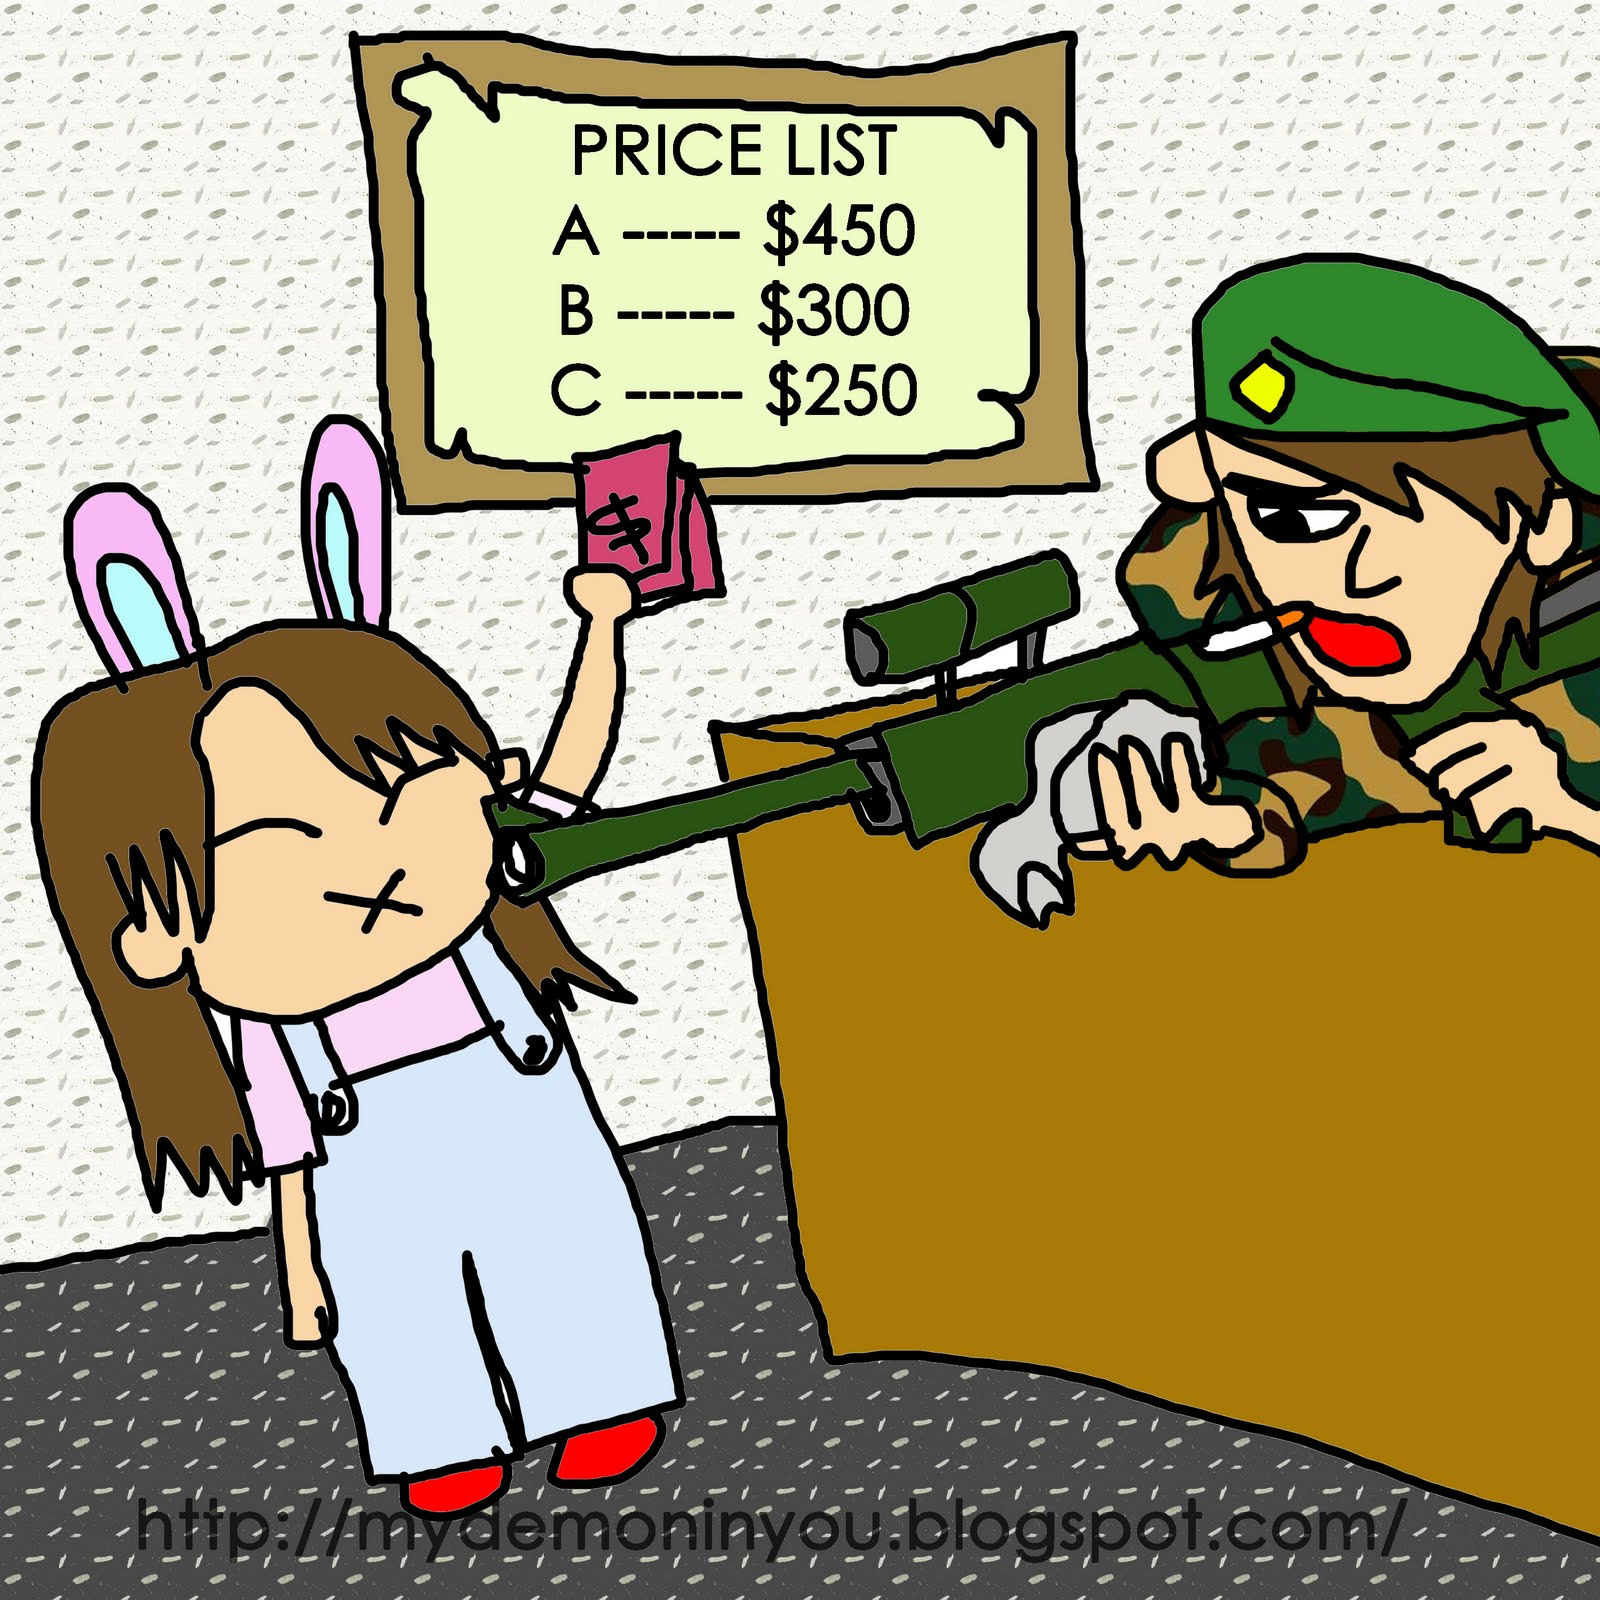 http://1.bp.blogspot.com/_0tRuf6x_RMg/TCsVJFWDzkI/AAAAAAAAPTs/01_BUztEmSM/s1600/Miffy+and+the+Sniper.jpg